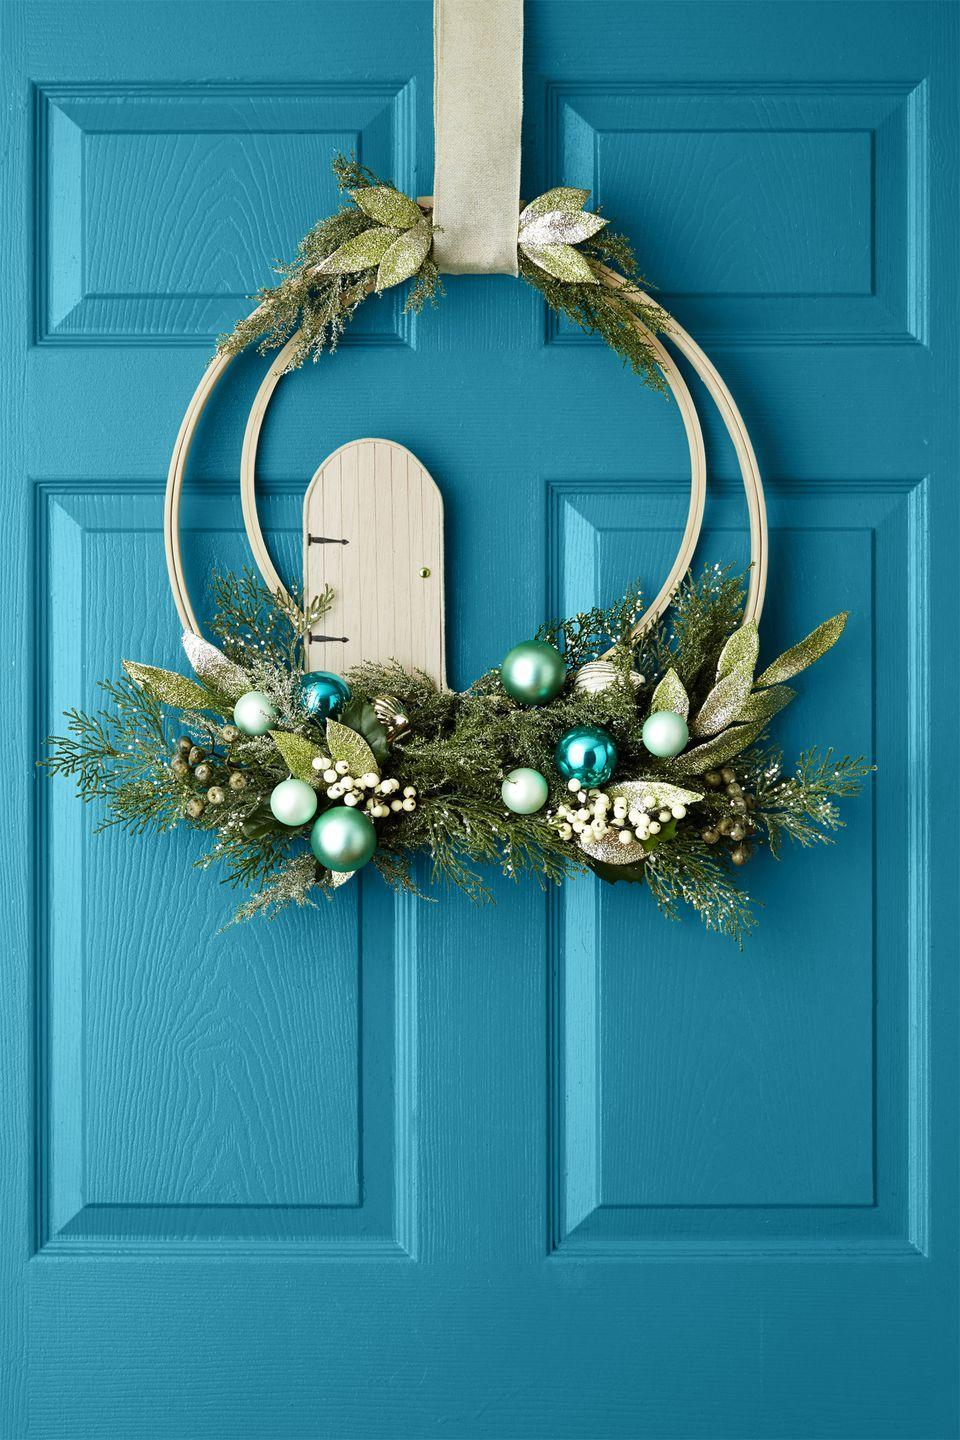 "<p>Santa's elves will feel a warm (and not to mention, magical) welcome with this fairy-approved wreath. Add a tiny fairy door to a decked-out embroidery hoop for a unique fix. </p><p><a class=""link rapid-noclick-resp"" href=""https://www.amazon.com/Touch-Nature-Garden-Wooden-4-Inch/dp/B00DDVDPDW/?tag=syn-yahoo-20&ascsubtag=%5Bartid%7C10055.g.2361%5Bsrc%7Cyahoo-us"" rel=""nofollow noopener"" target=""_blank"" data-ylk=""slk:SHOP FAIRY DOORS"">SHOP FAIRY DOORS</a> </p>"